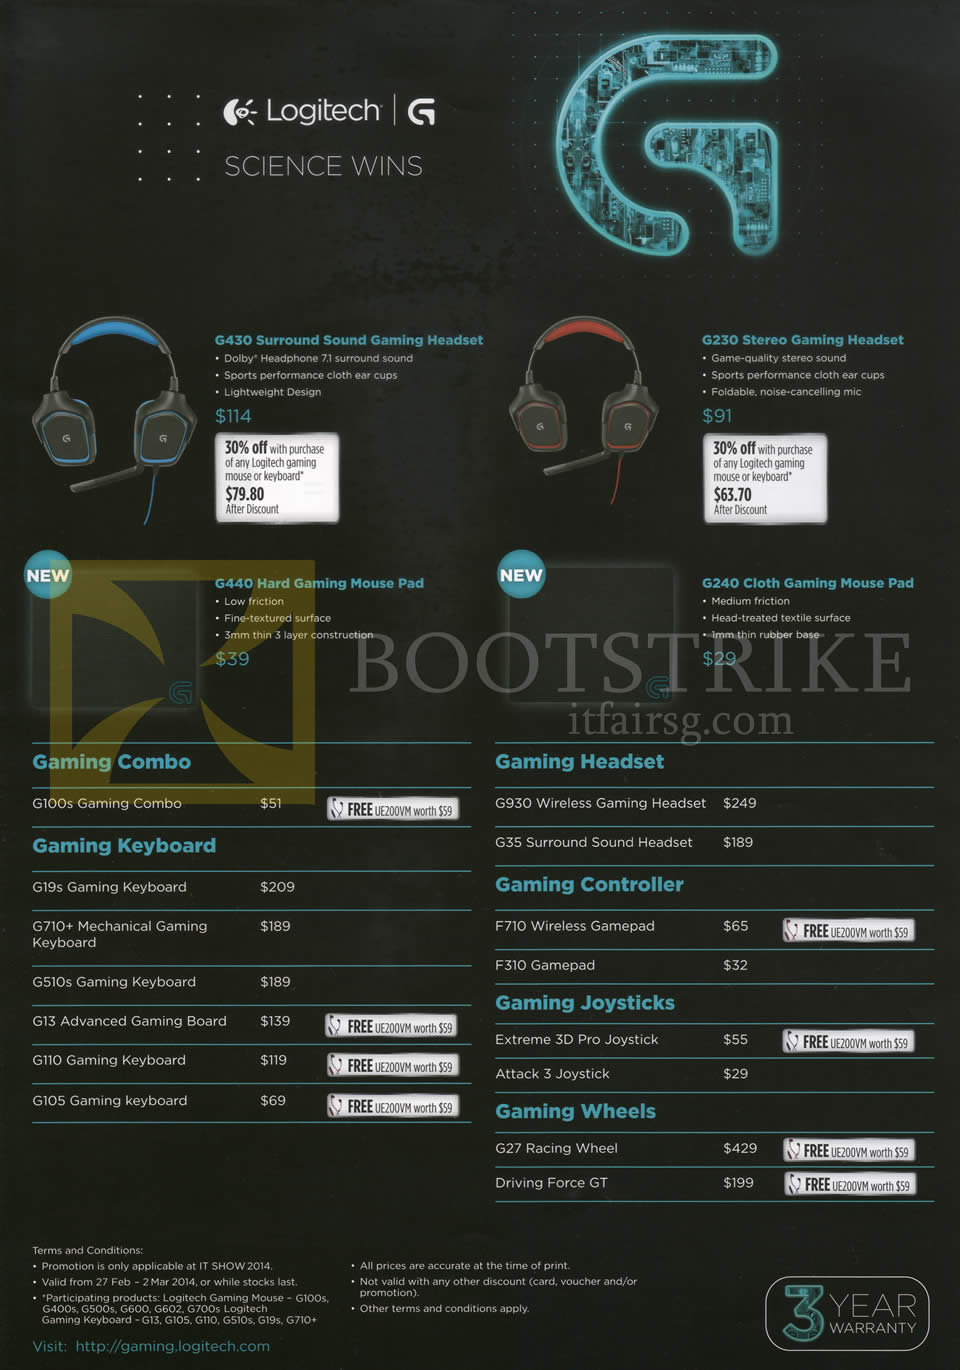 IT SHOW 2014 price list image brochure of Logitech Gaming Headsets G430 Surround, G230 Stereo, Keyboard Mouse G440 G240 G100s G19s G710 G510 G13 G110 G105 G930 G35 F710 F310, G27 Racing Wheel